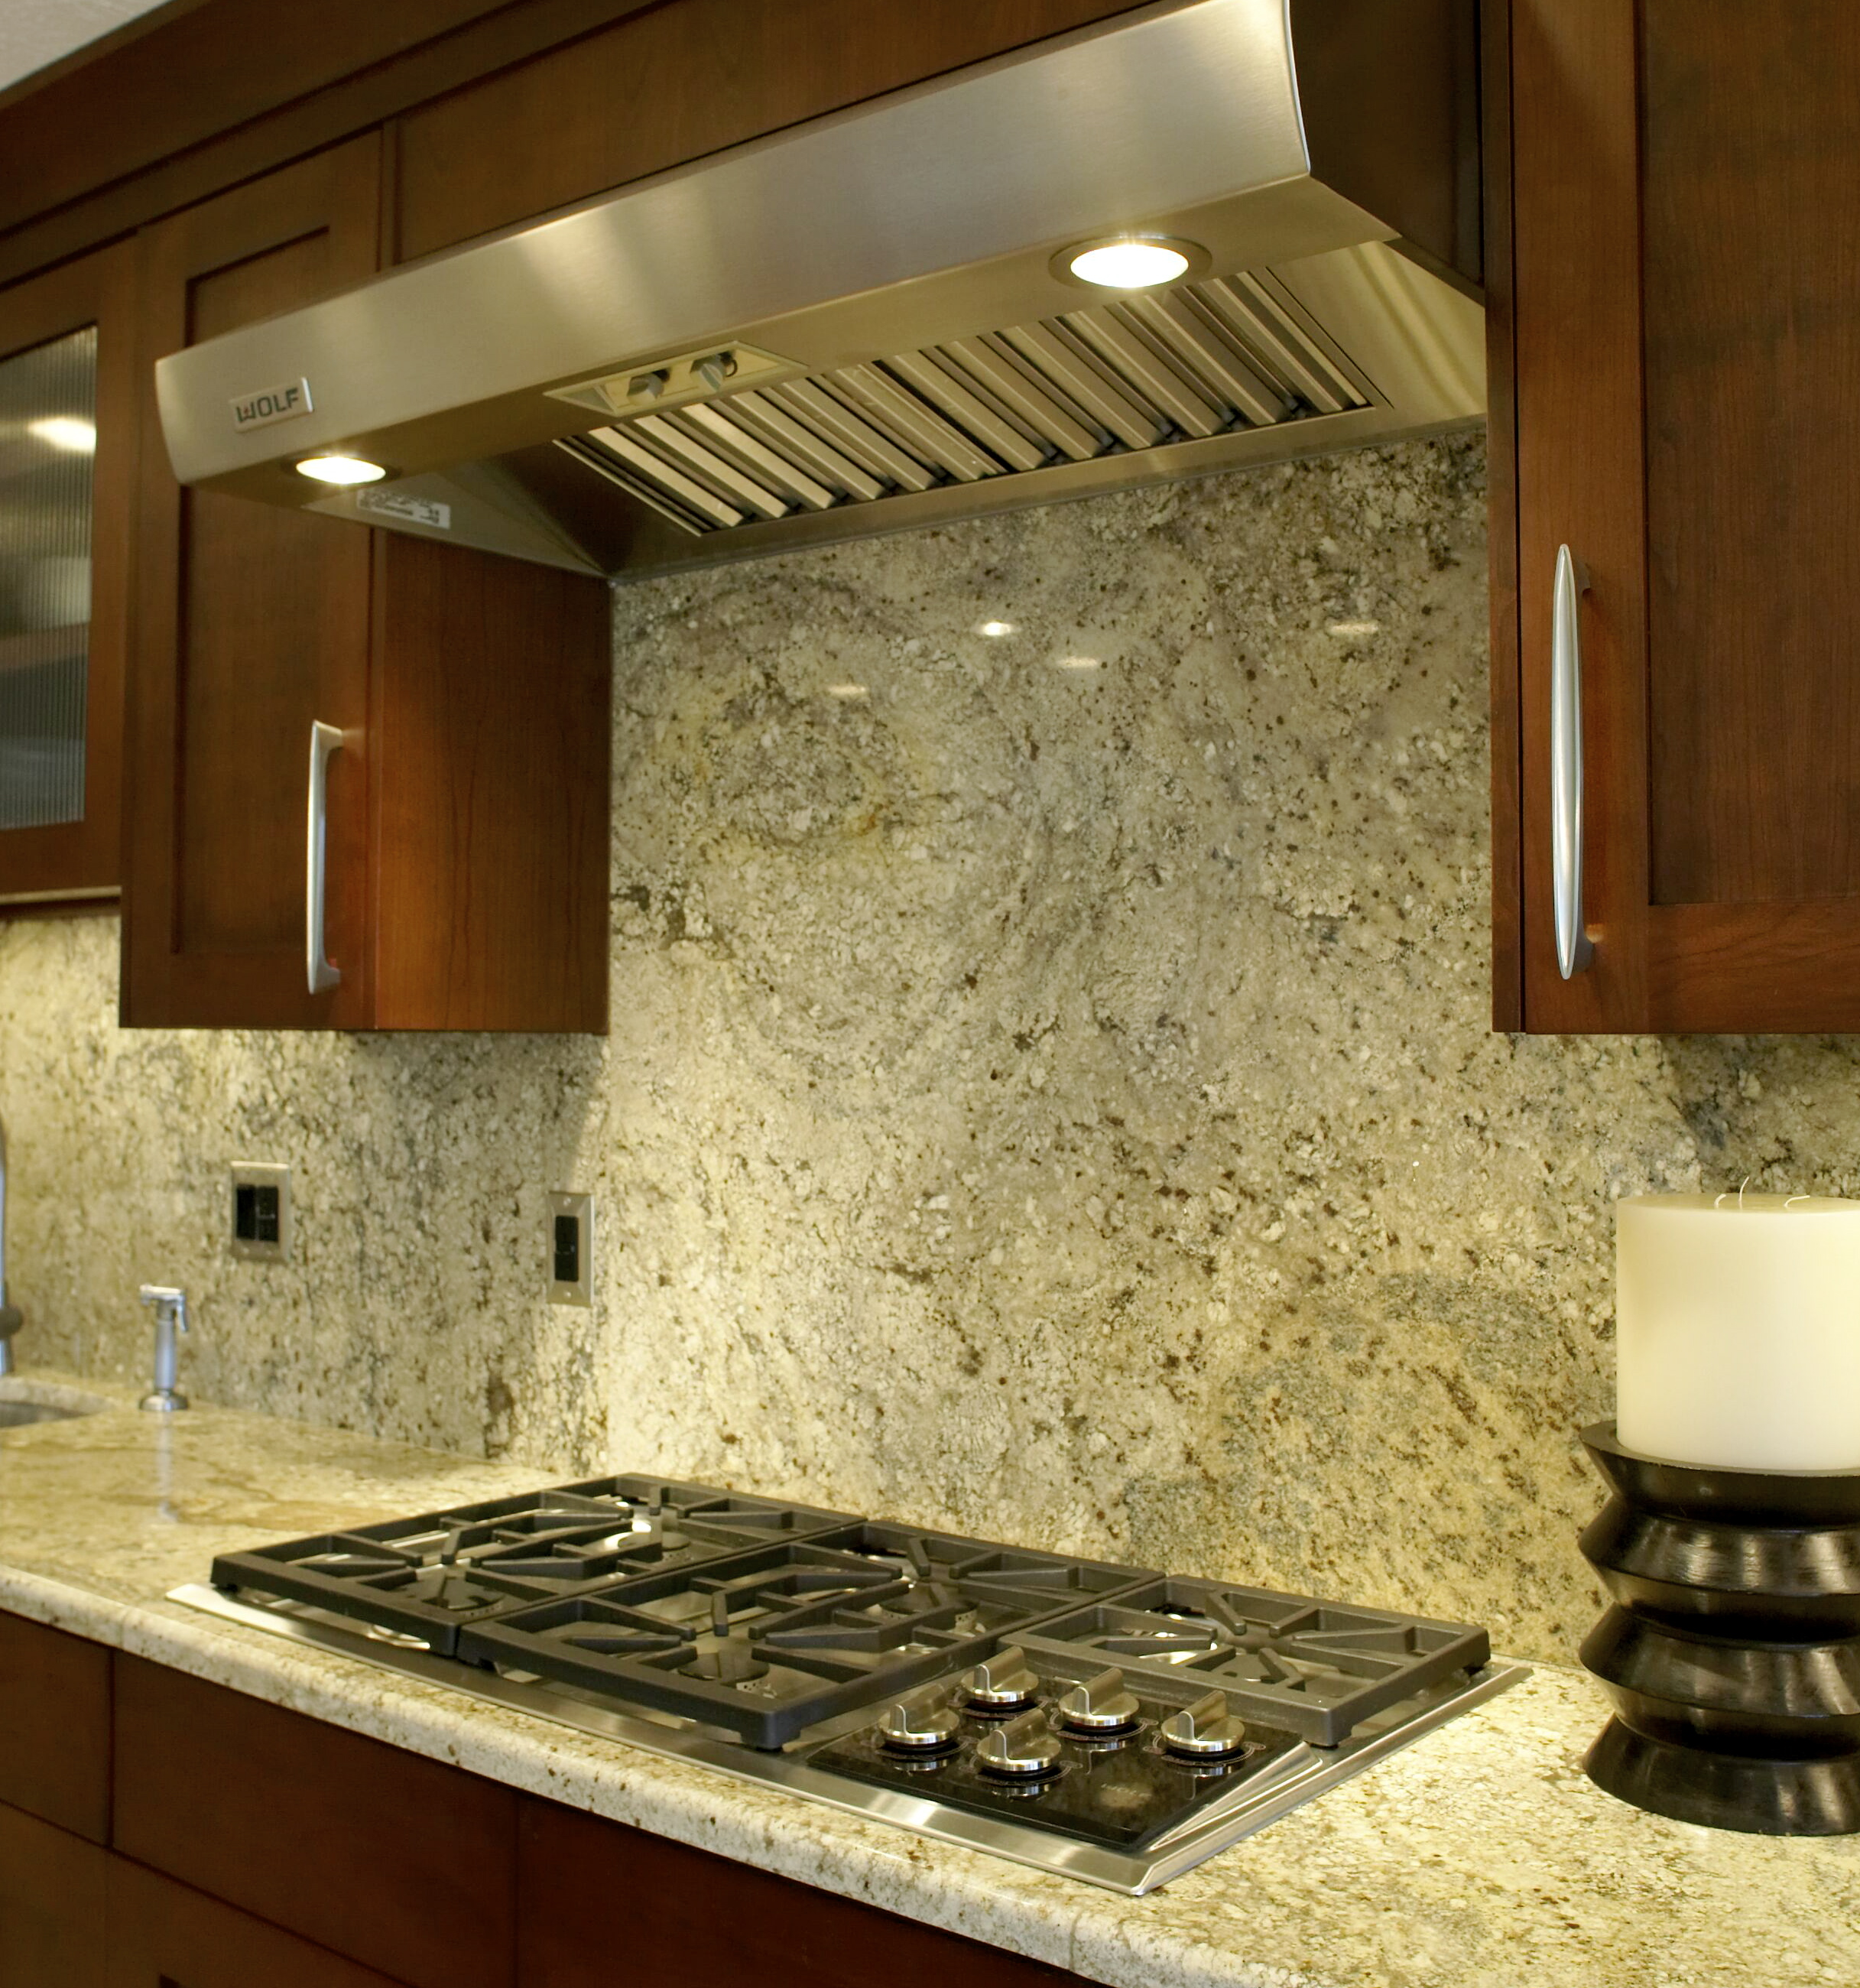 Are backsplashes important in a kitchen? | Kitchen Details ... on Kitchen Backsplash Backsplash Ideas For Granite Countertops  id=42674